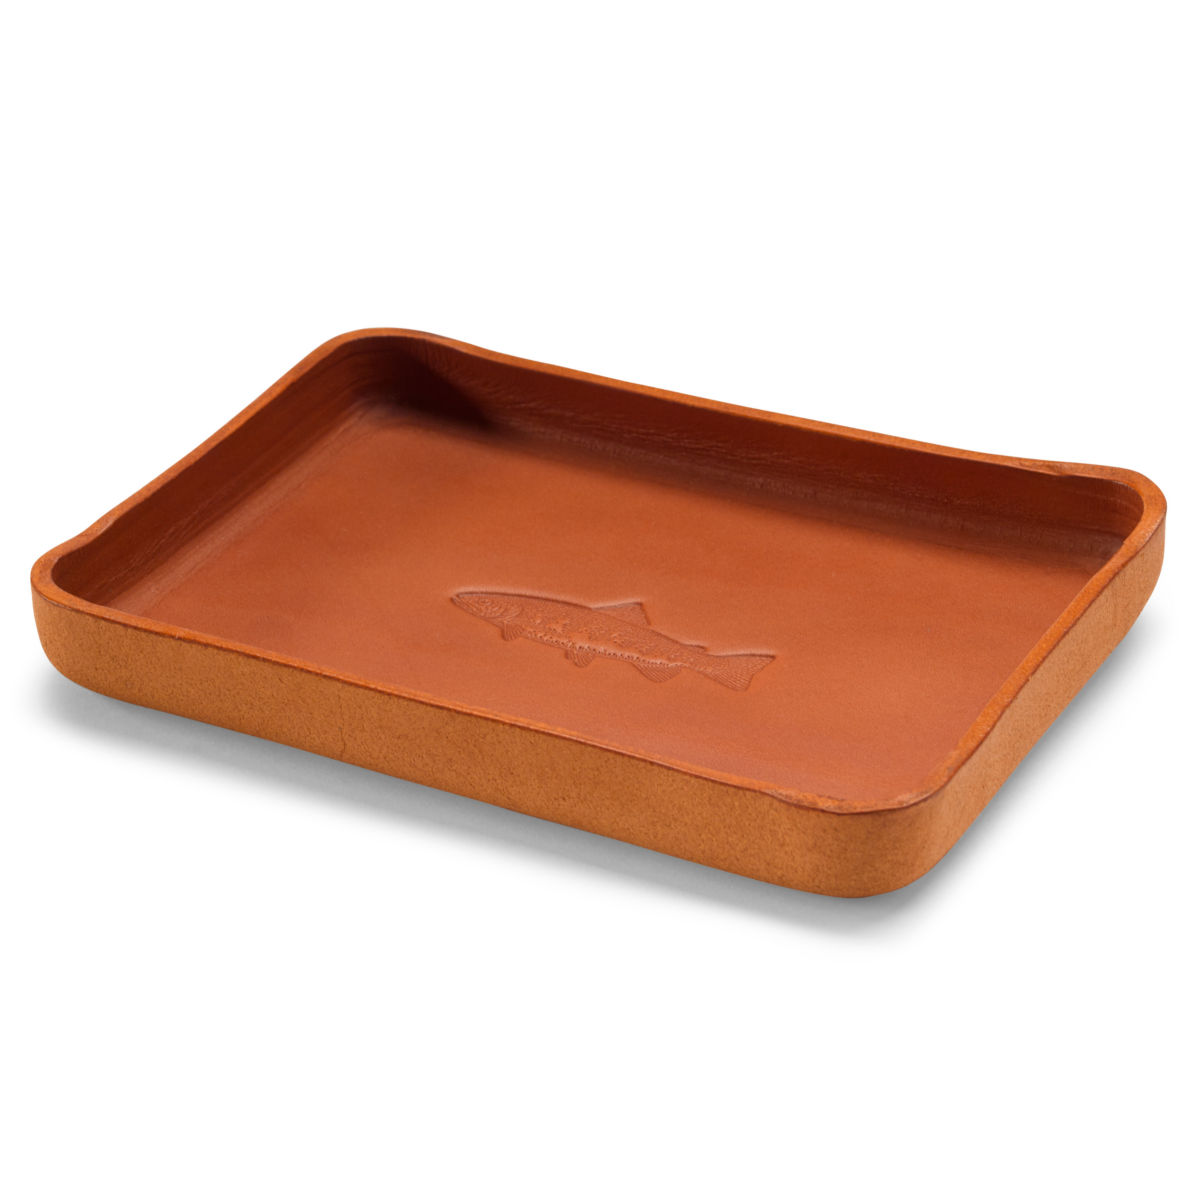 Leather Desktop Tray with Fish - image number 0